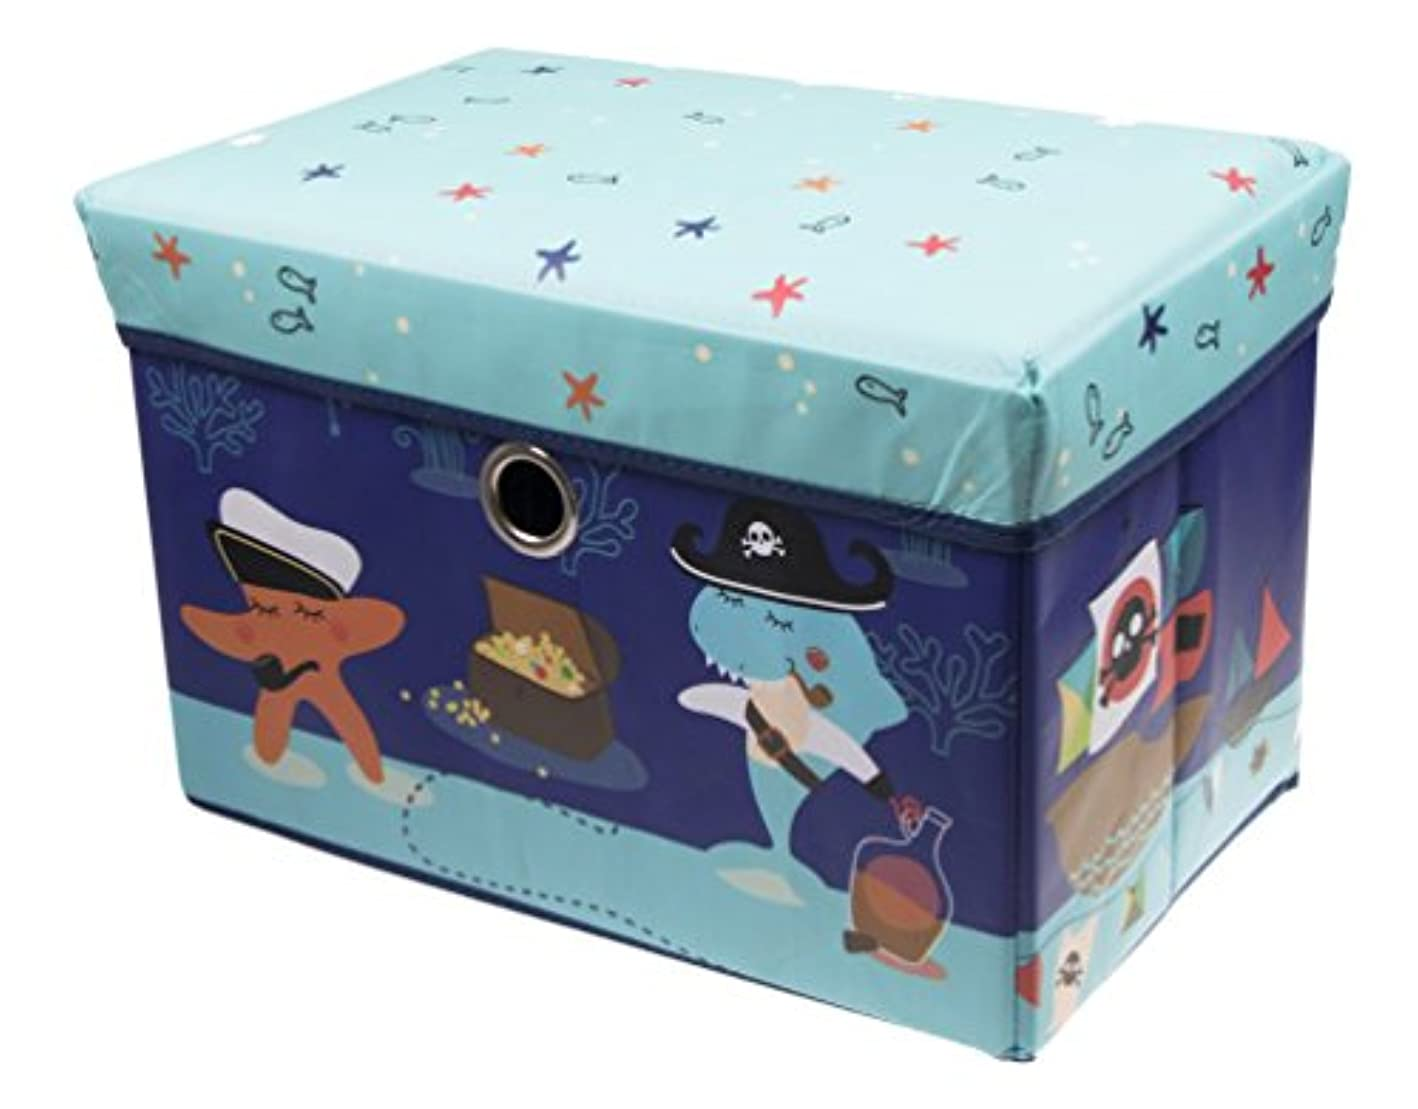 Clever Creations Underwater Sea Adventure Storage Organizer Storage Ottoman for Any Room | Perfect Size Chest for Books, Shoes, Games & More